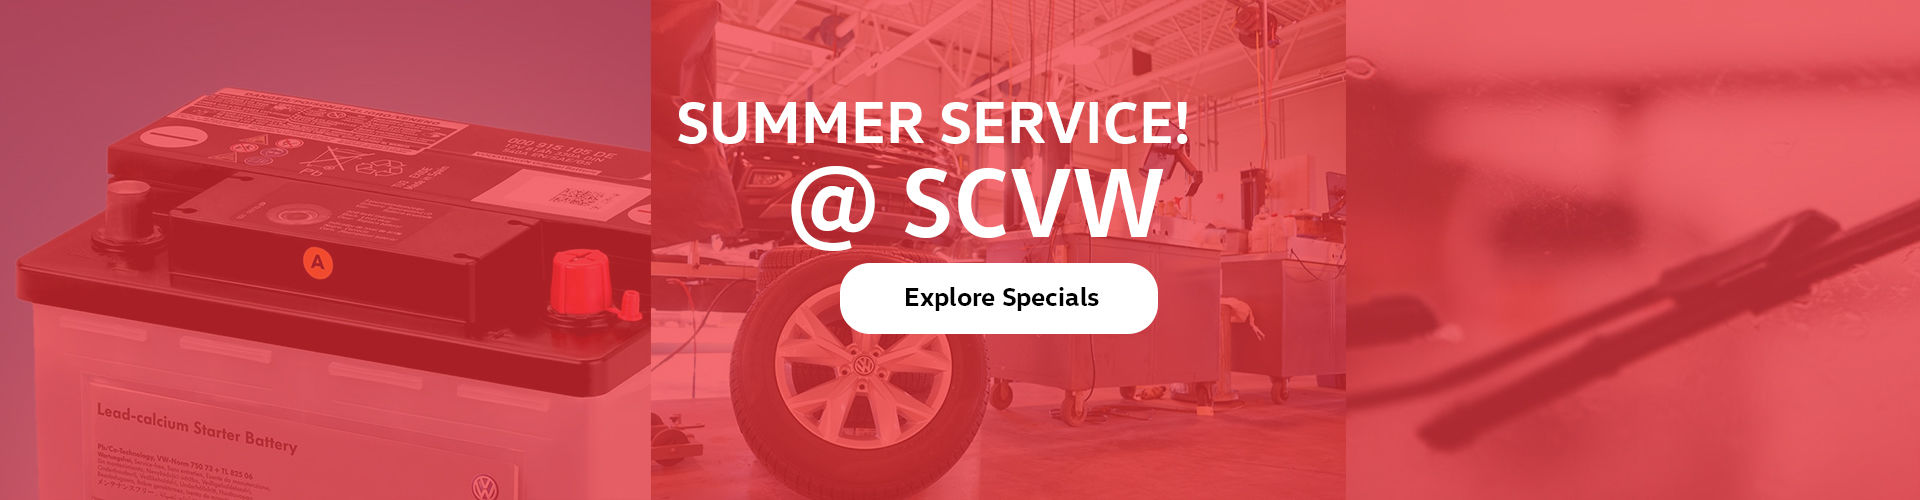 Summer Service Specials - South